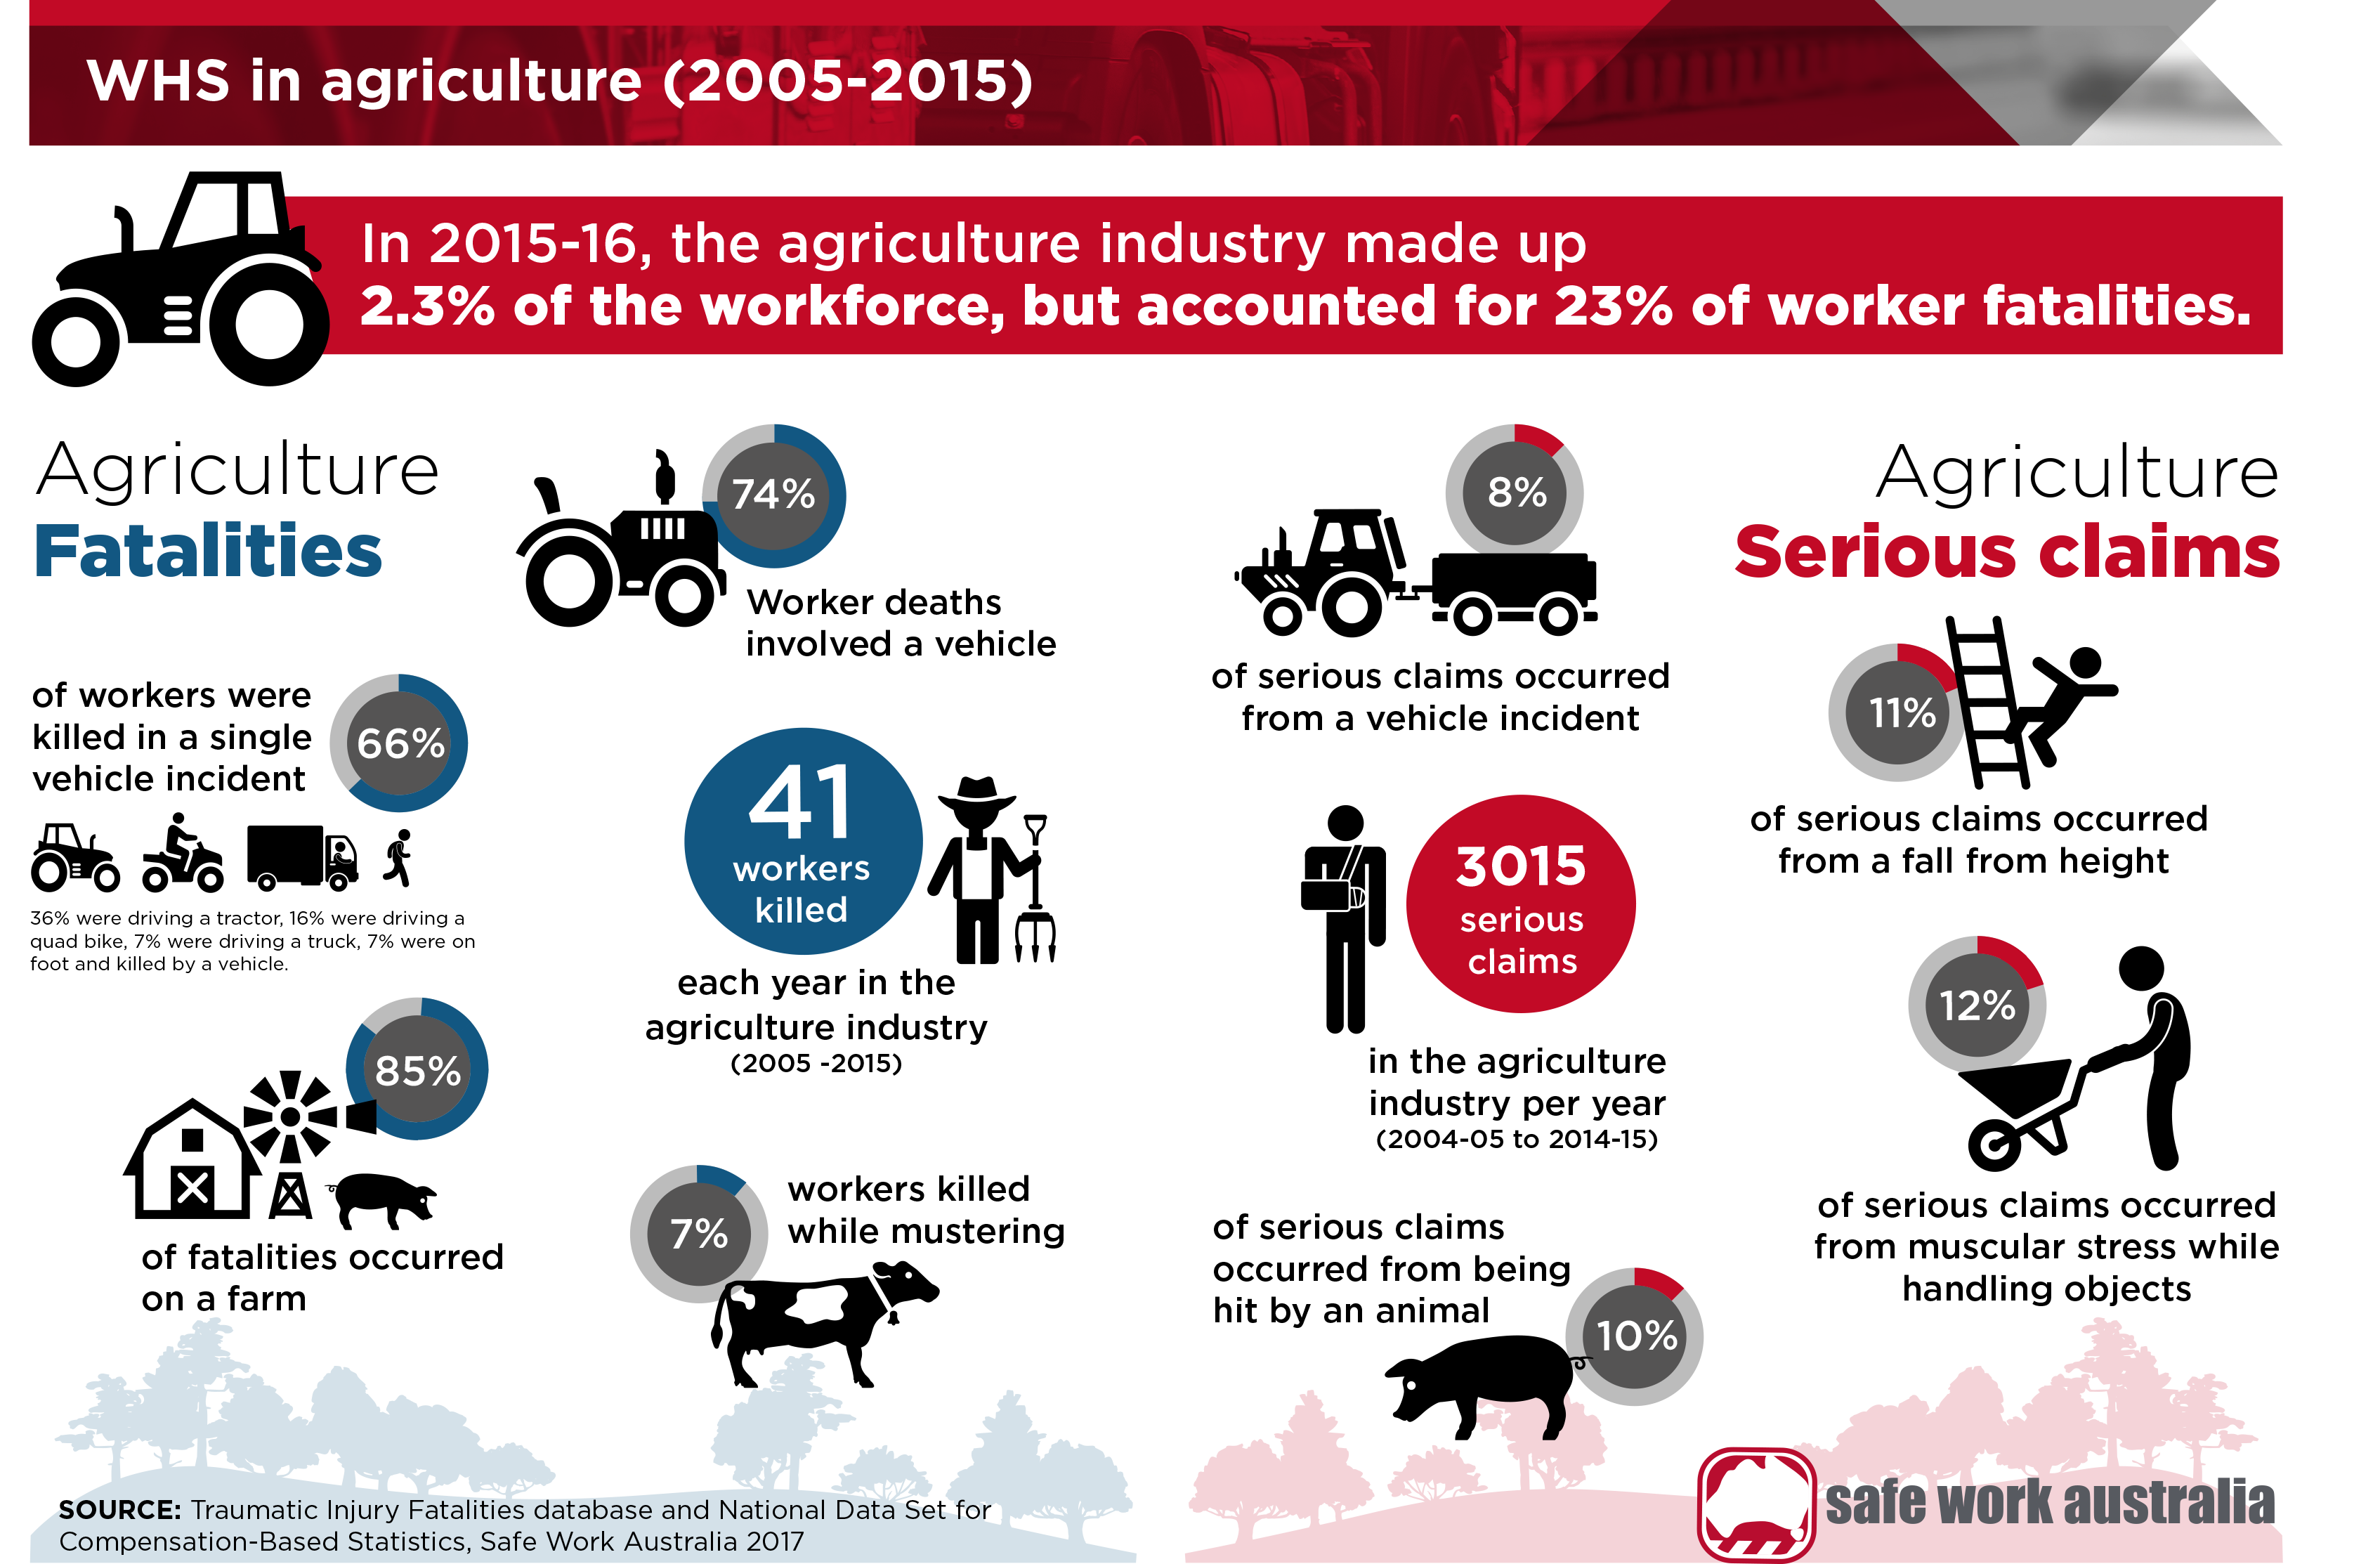 whs-in-agriculture-infographic image;